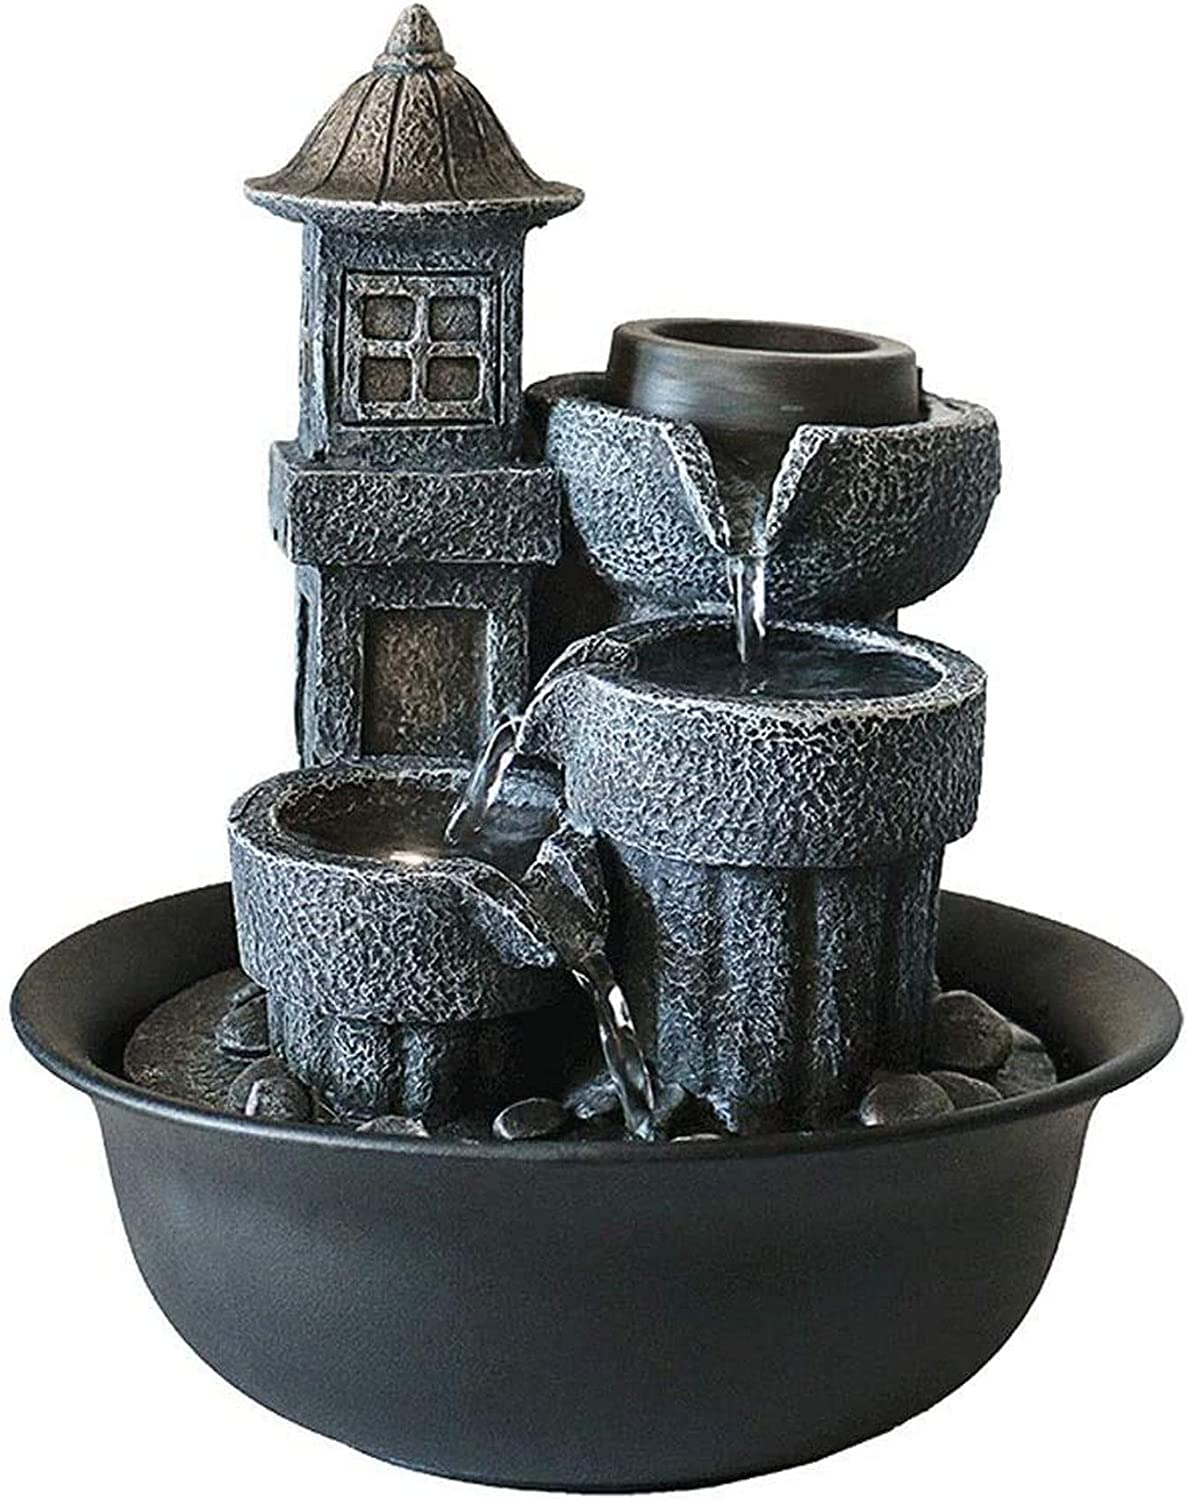 XHCP Indoor Fountain Tabletop Water Fountain Lighthouse Tabletop Fountain Living Room Office Desktop Decoration Housewarming Gift, Resin Desktop Waterfall